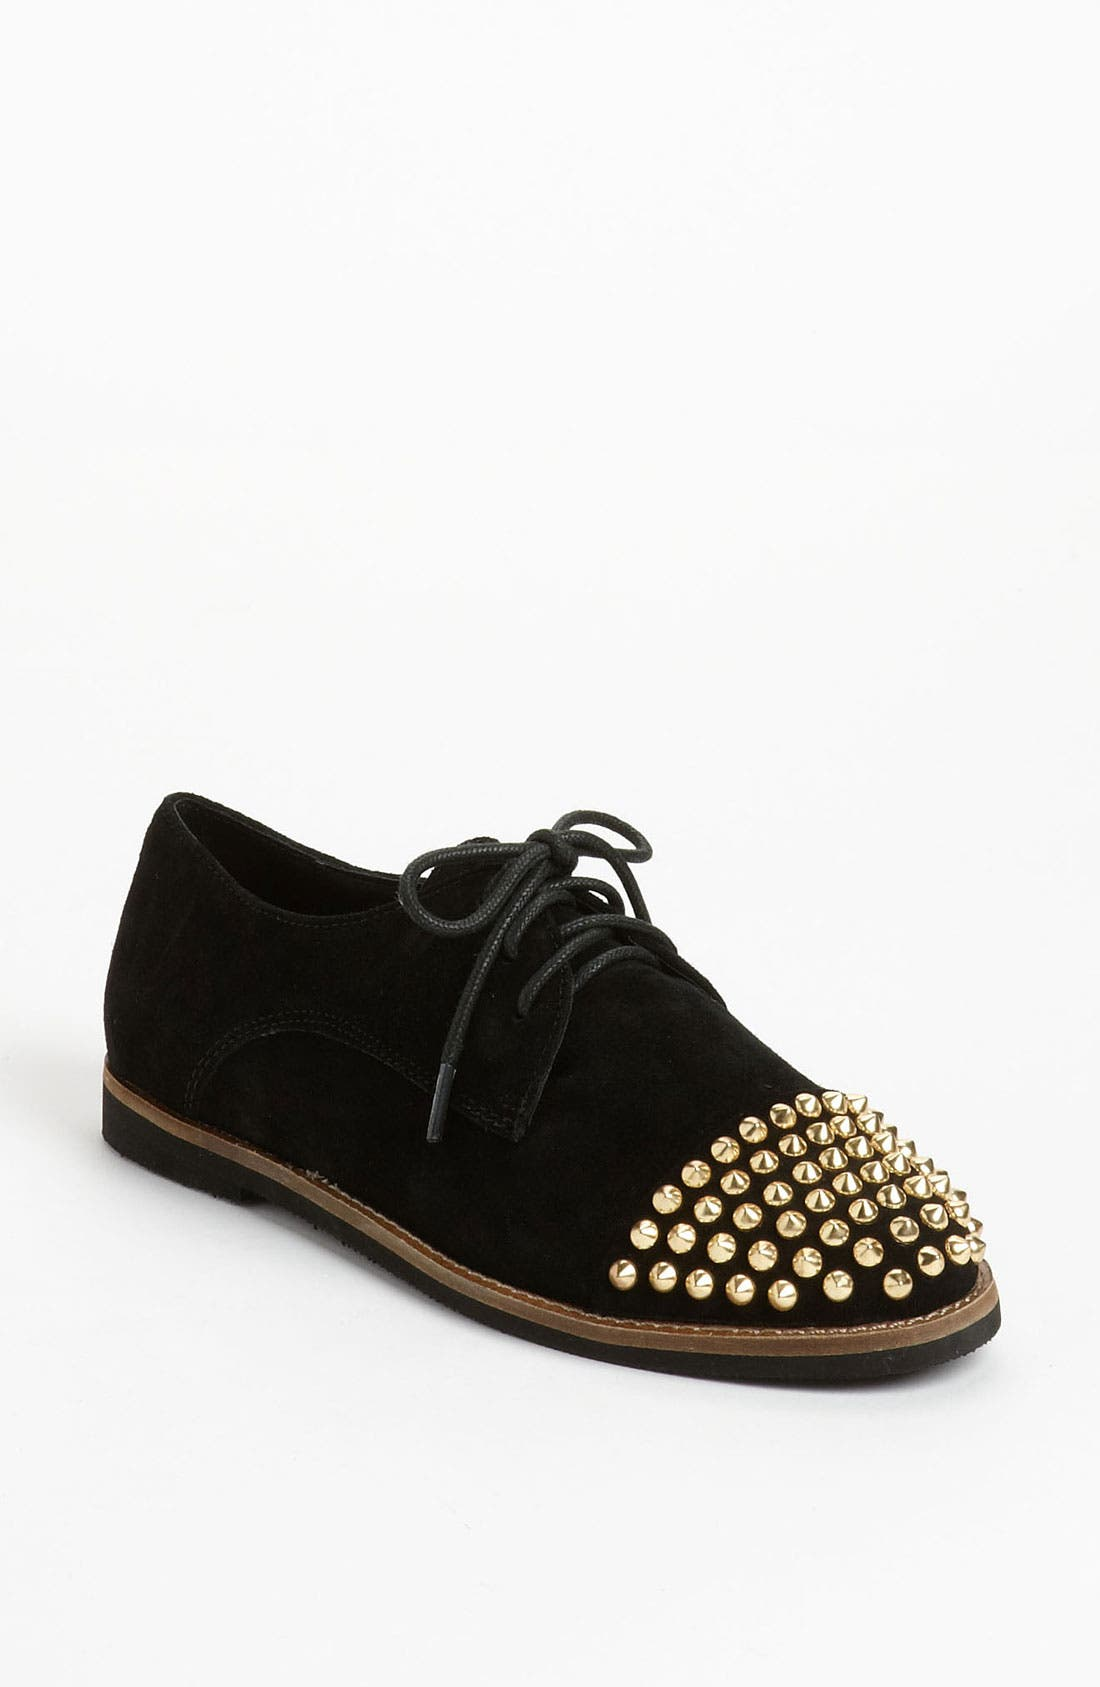 Alternate Image 1 Selected - Steve Madden 'Jazzhan' Flat